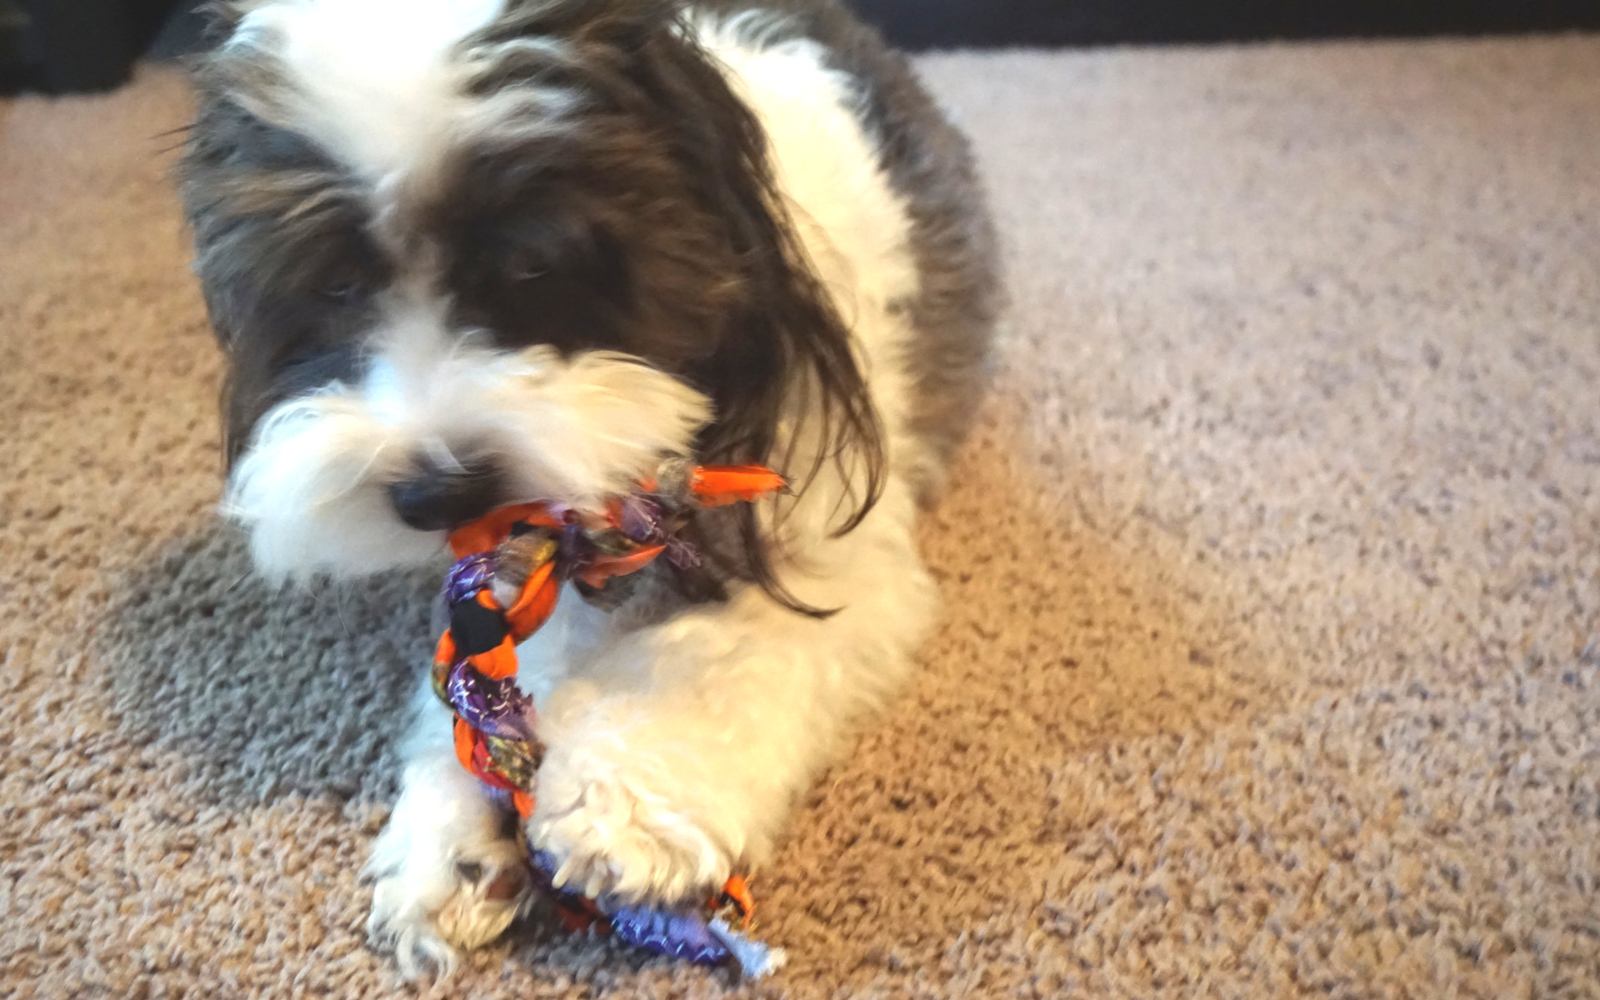 Dog Grooming Bandana Repurpose MiniSeries: DIY No-Sew Dog Rope for Small Dogs